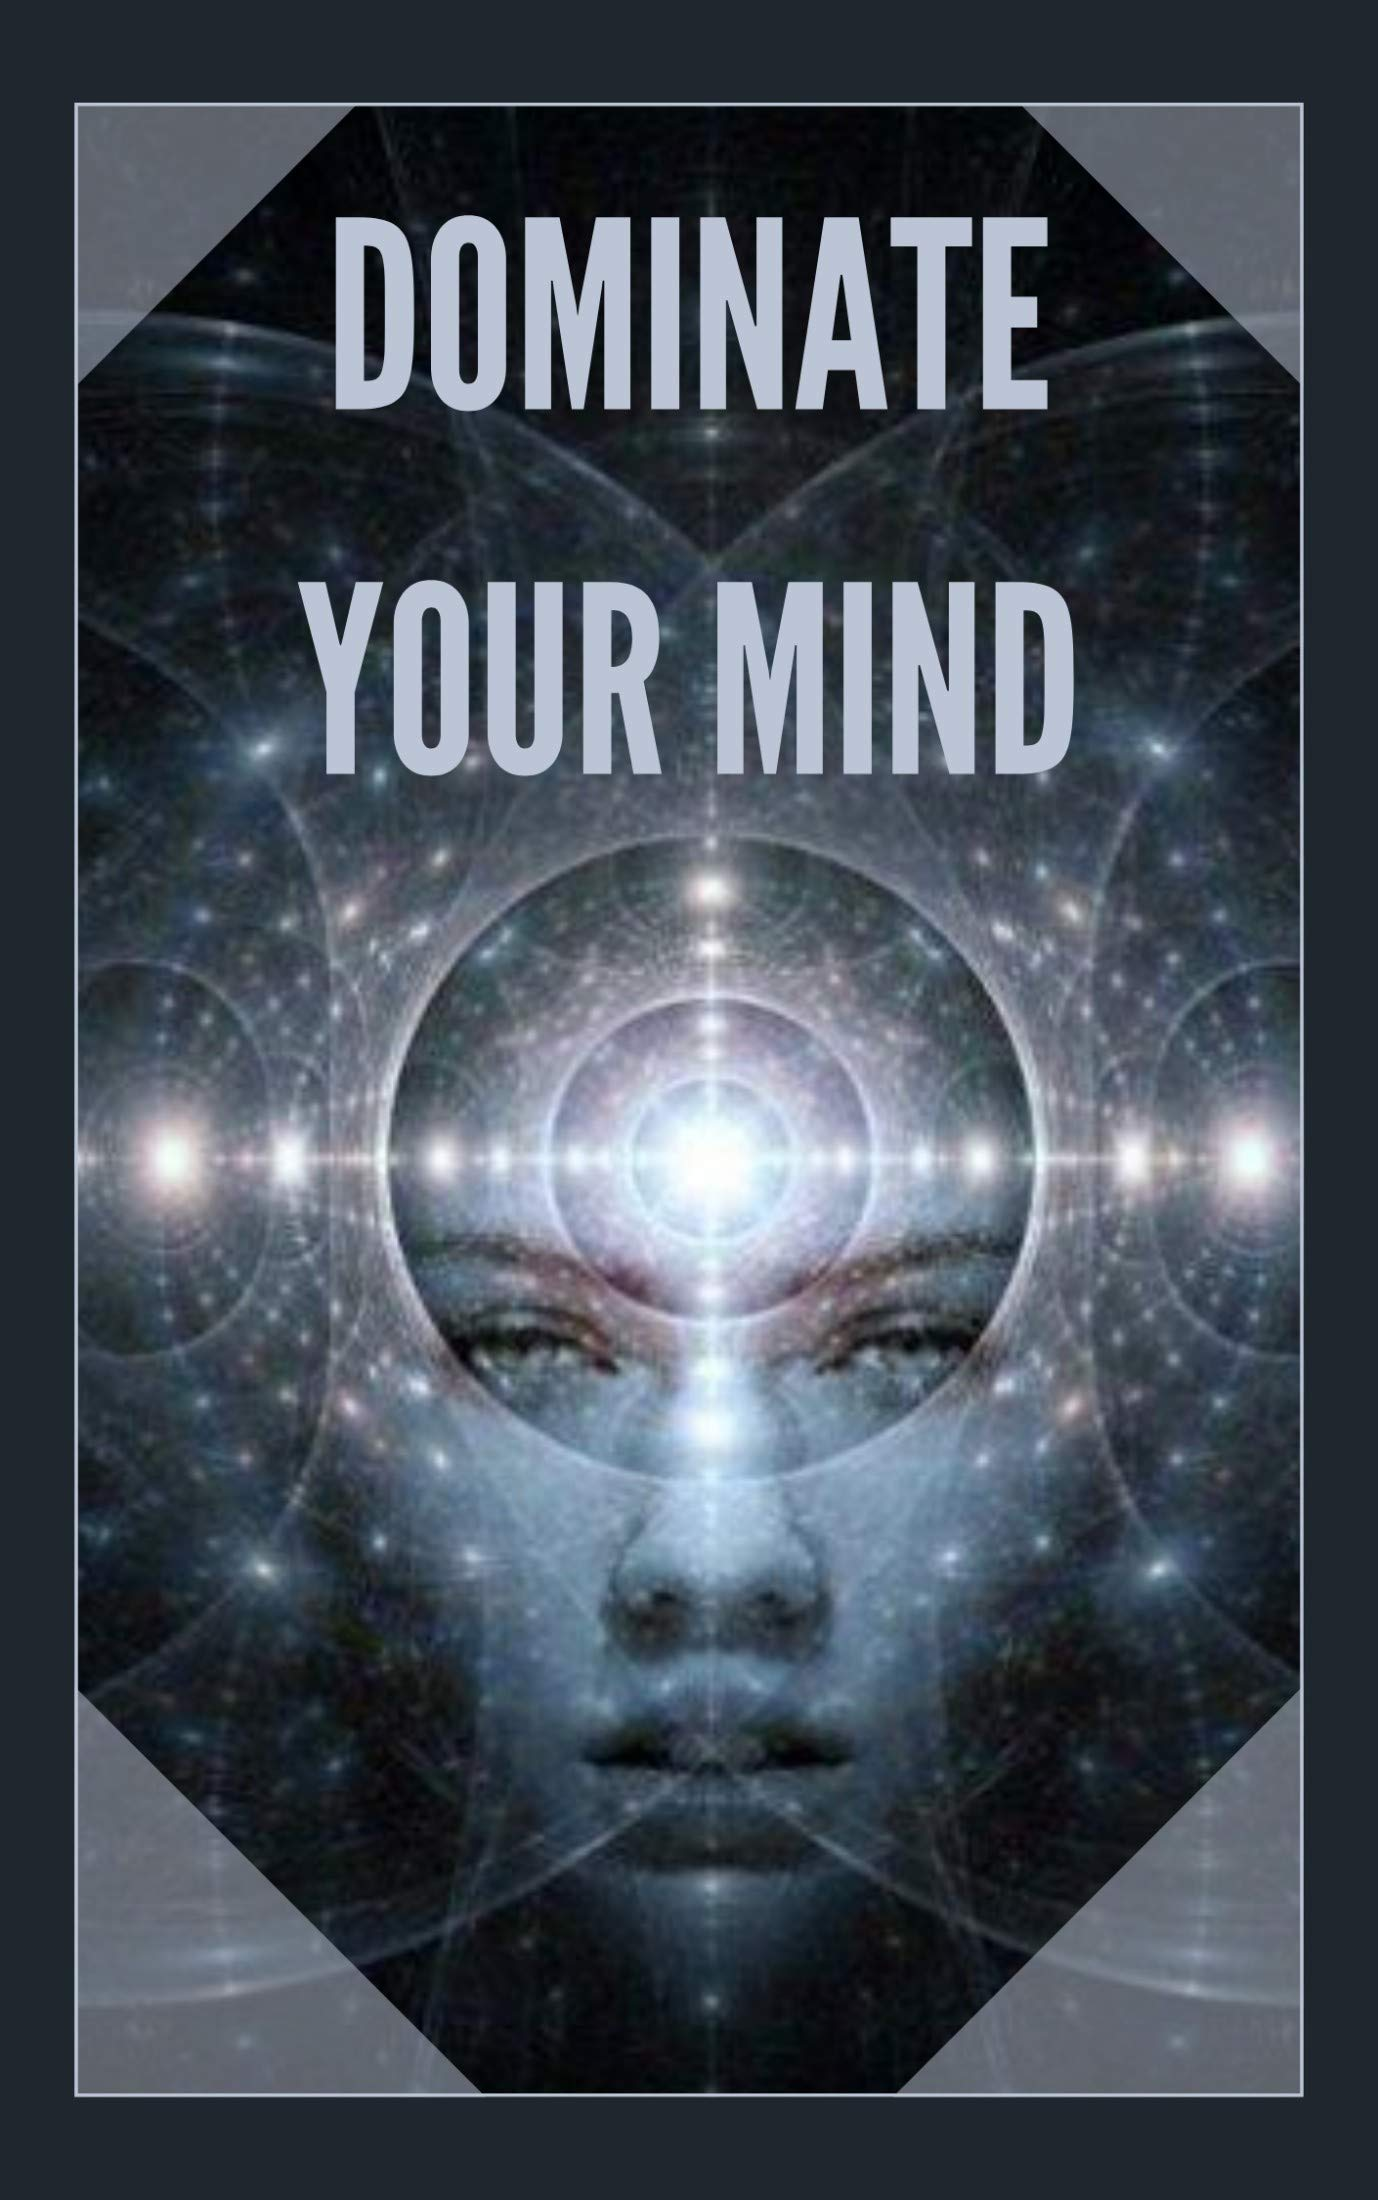 Image OfDOMINATE YOUR MIND: The Mind As An Ally